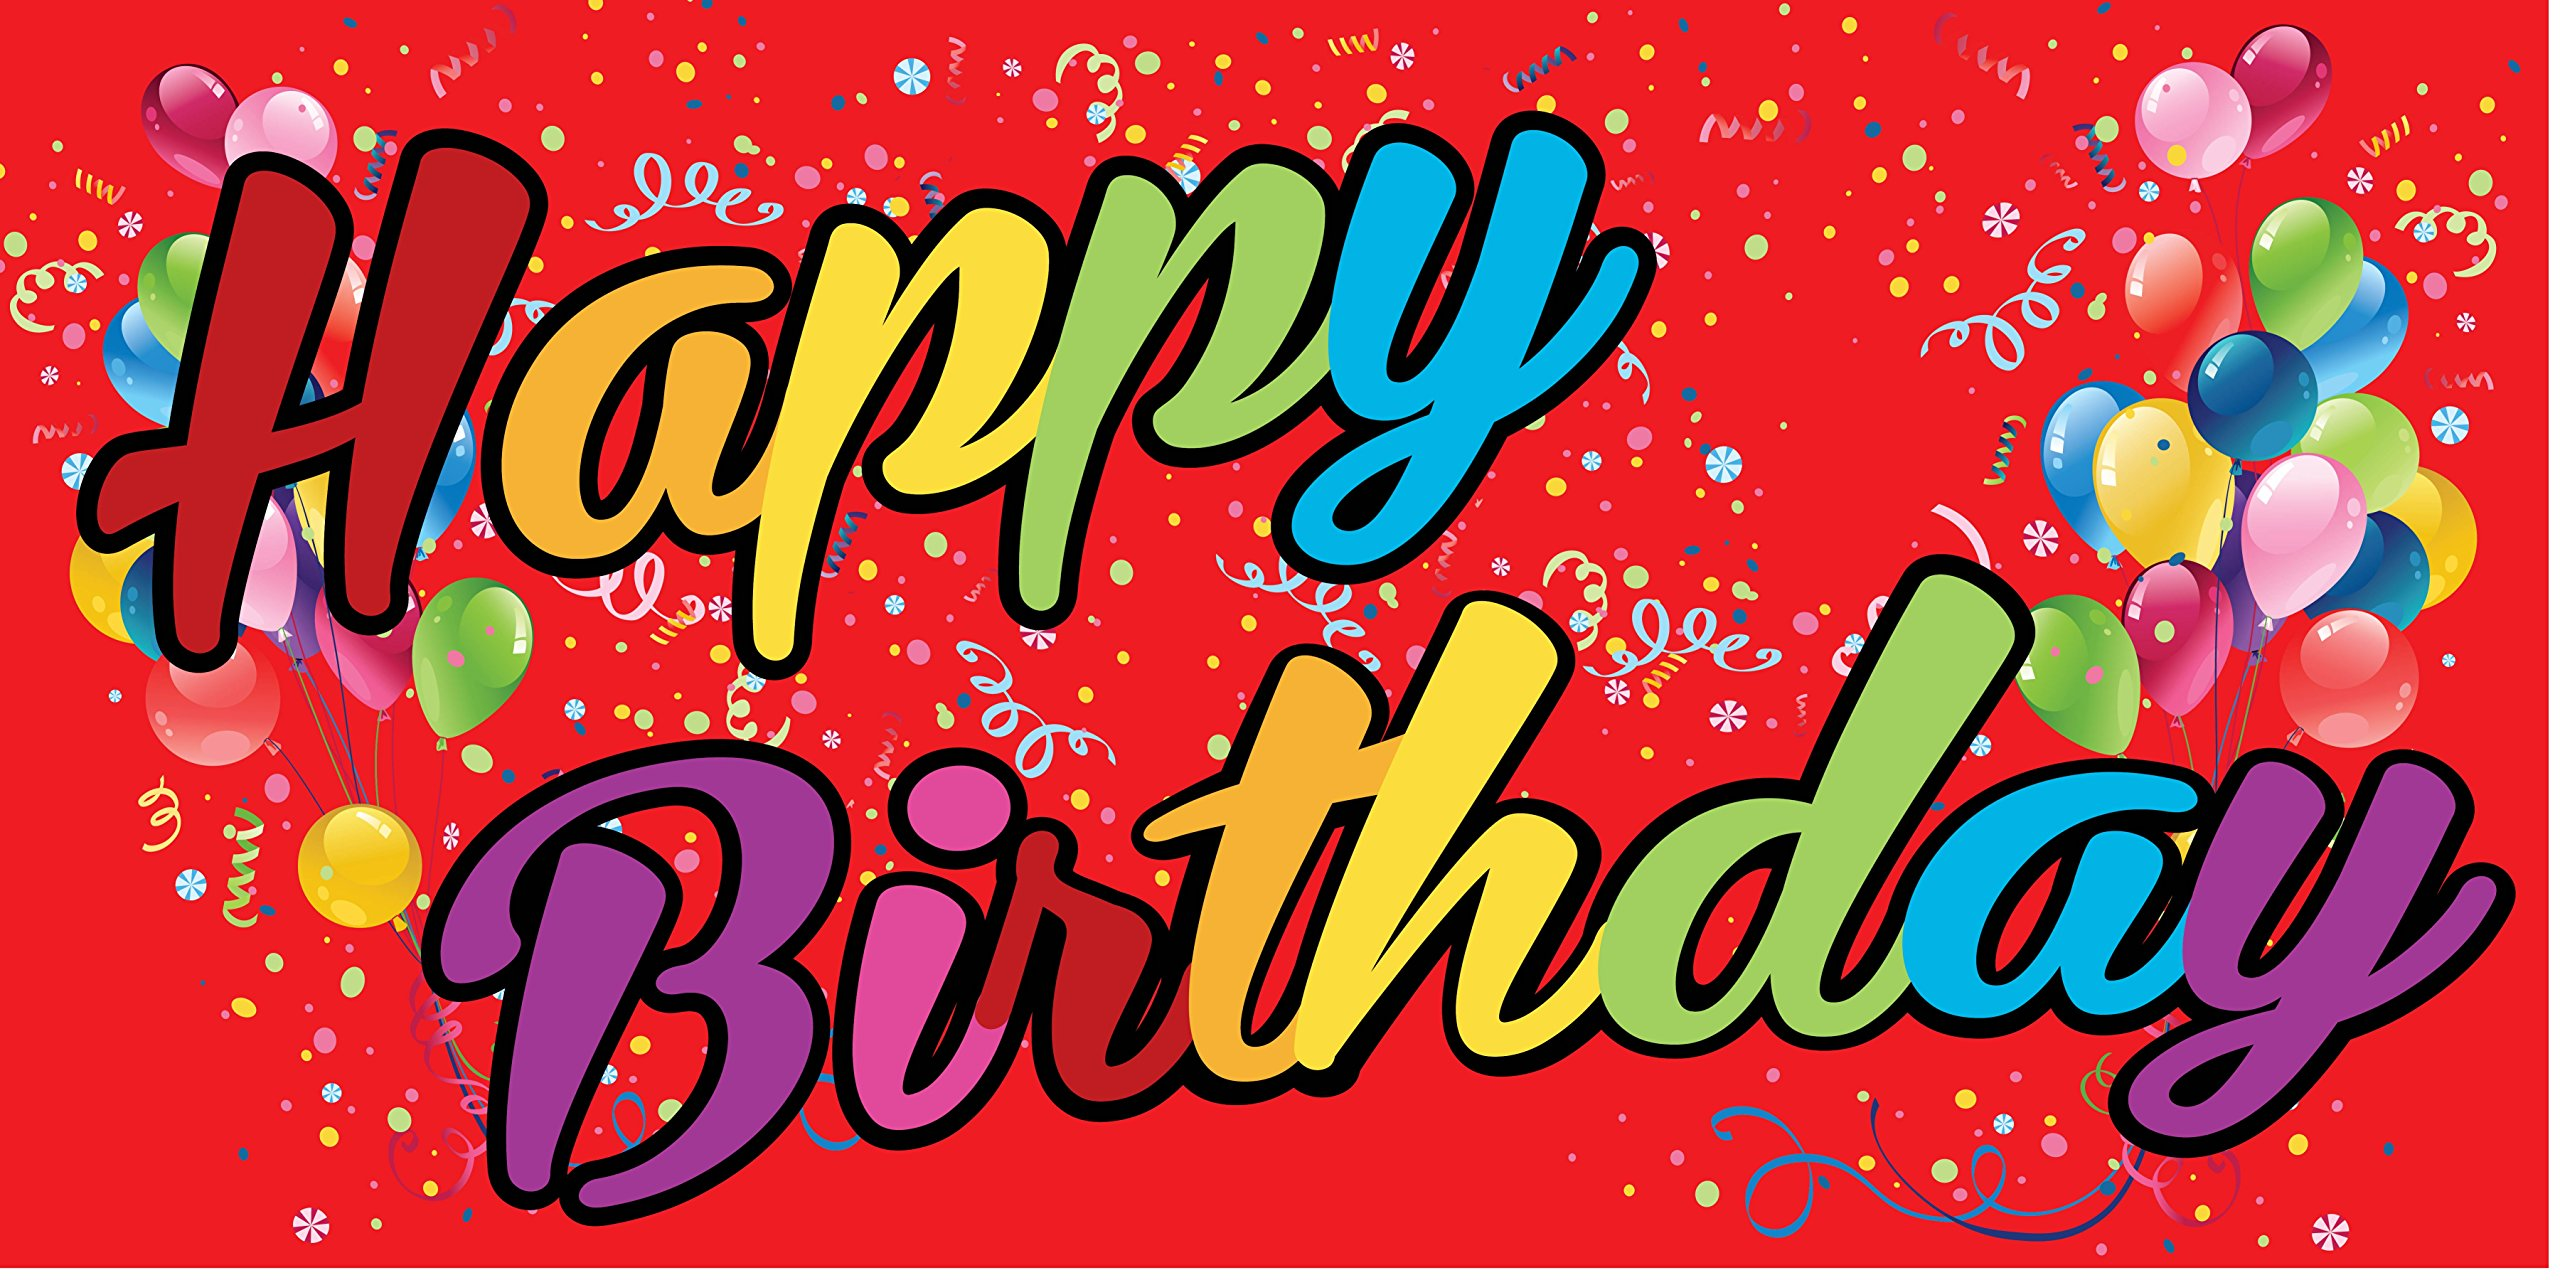 Pre-Printed Happy Birthday Banner - Rainbow - Red (10' x 5') by Reliable Banner Sign Supply & Printing